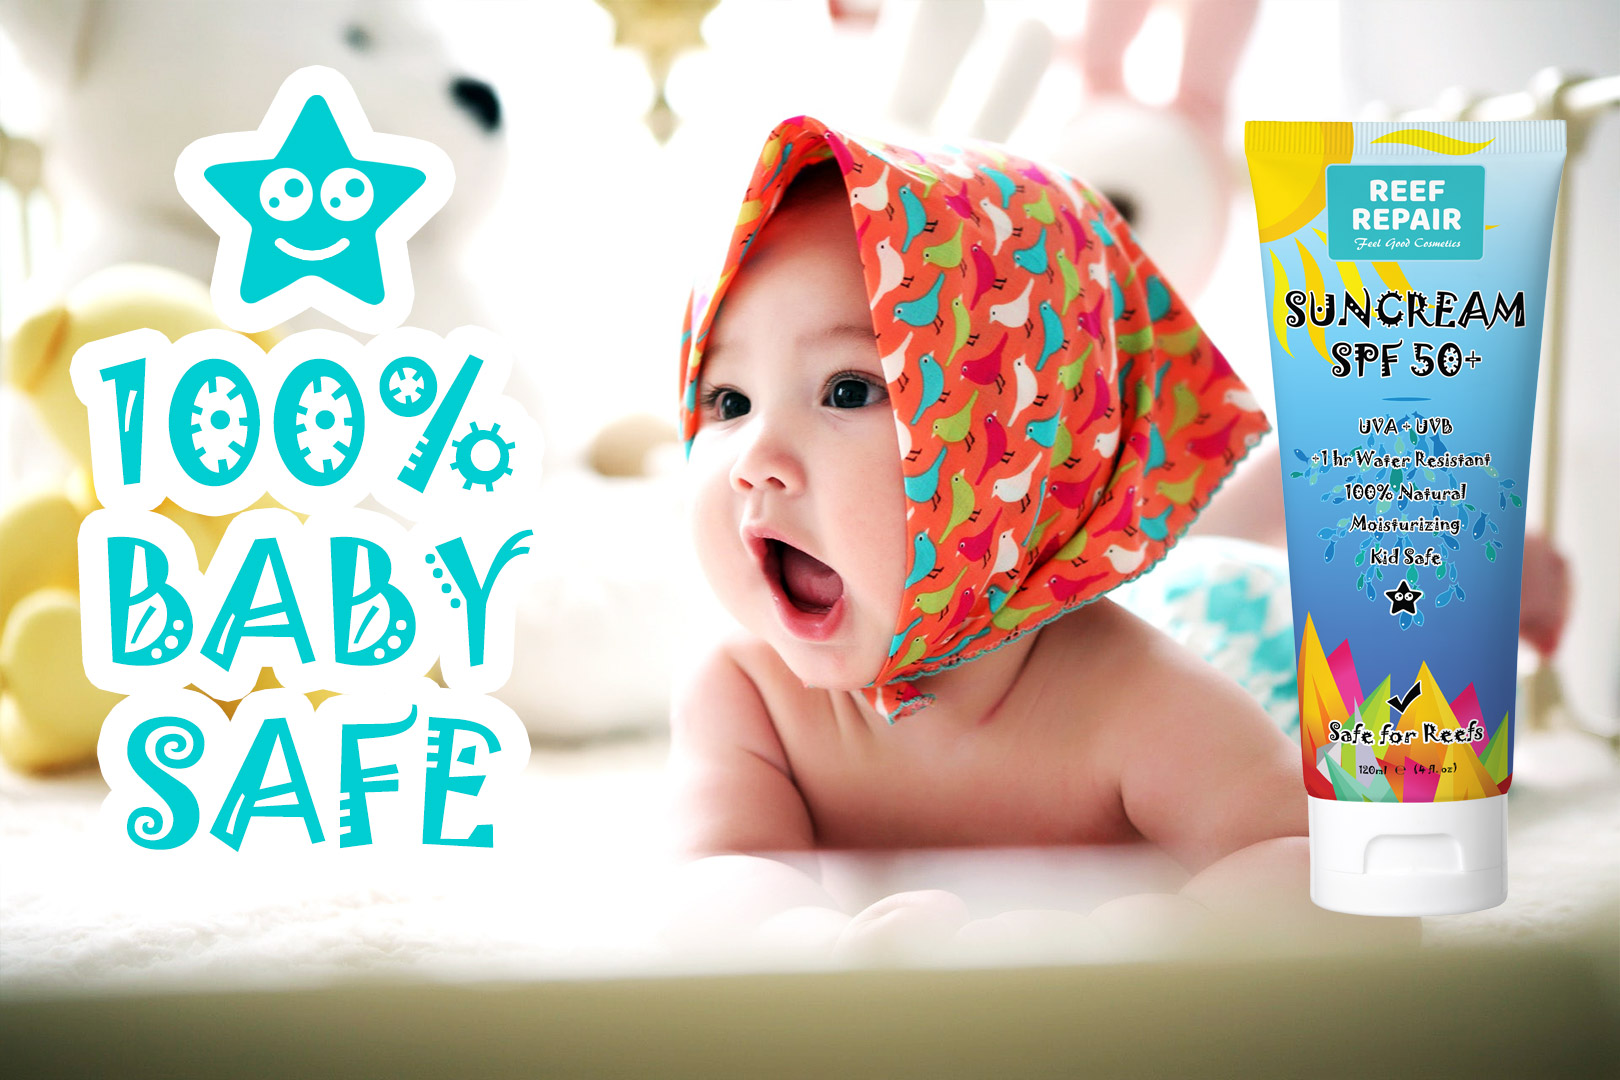 Baby Safe All Natural Oxybenzone Free SPF 50 Sunscreen from Reef Repair 120ml